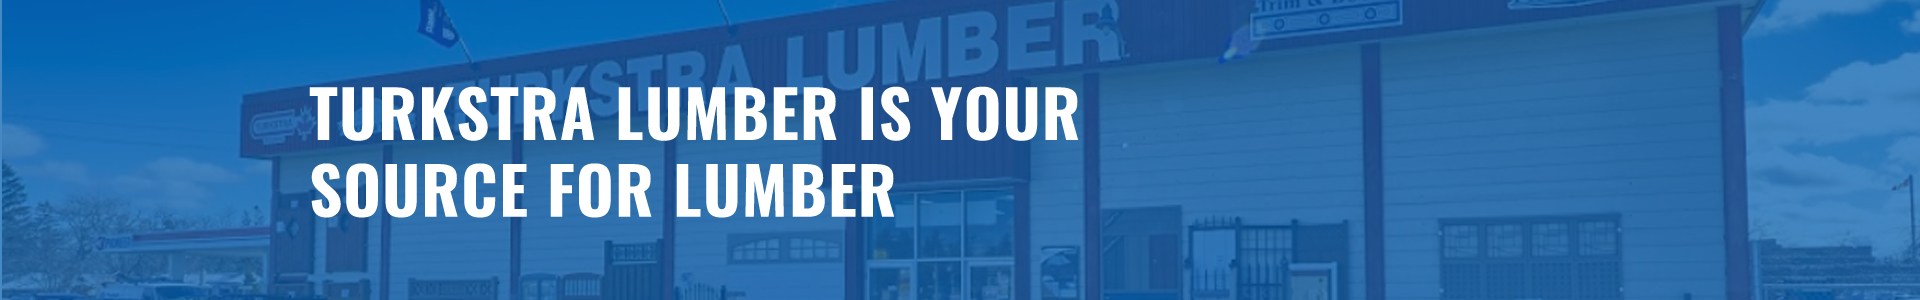 Turkstra Brantford carries complete selection of lumber, doors, trim, moldings, and windows.